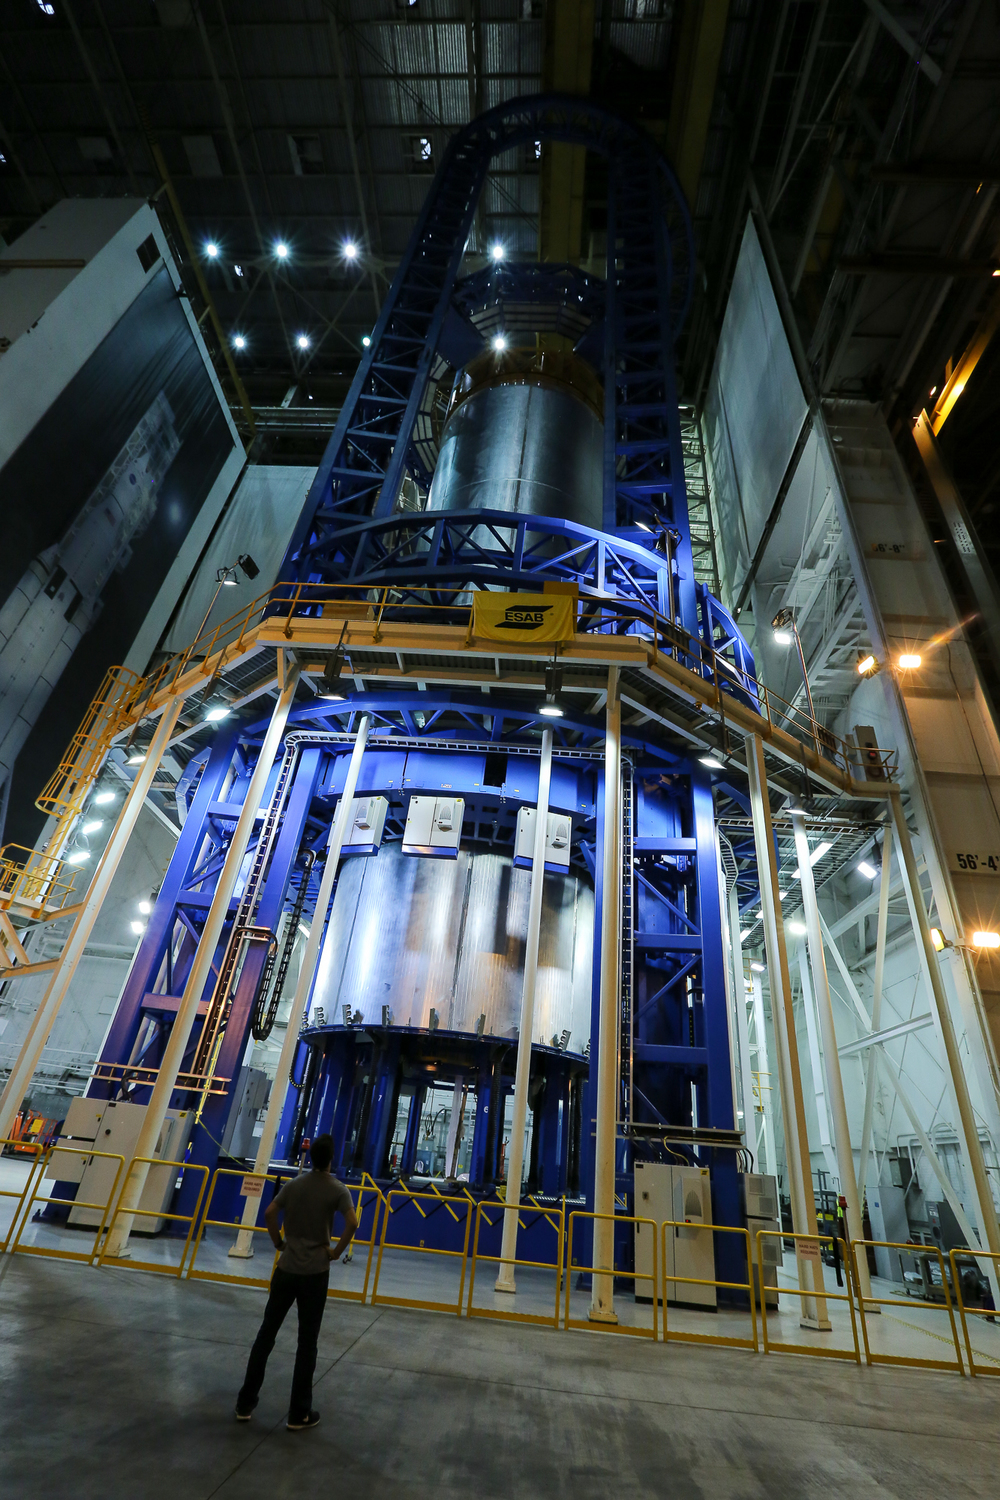 The vertical assembly center at NASA Michoud is being used to build the Space Launch System (SLS), our generation's version of the rocket system that launched Apollo 11 to the moon.